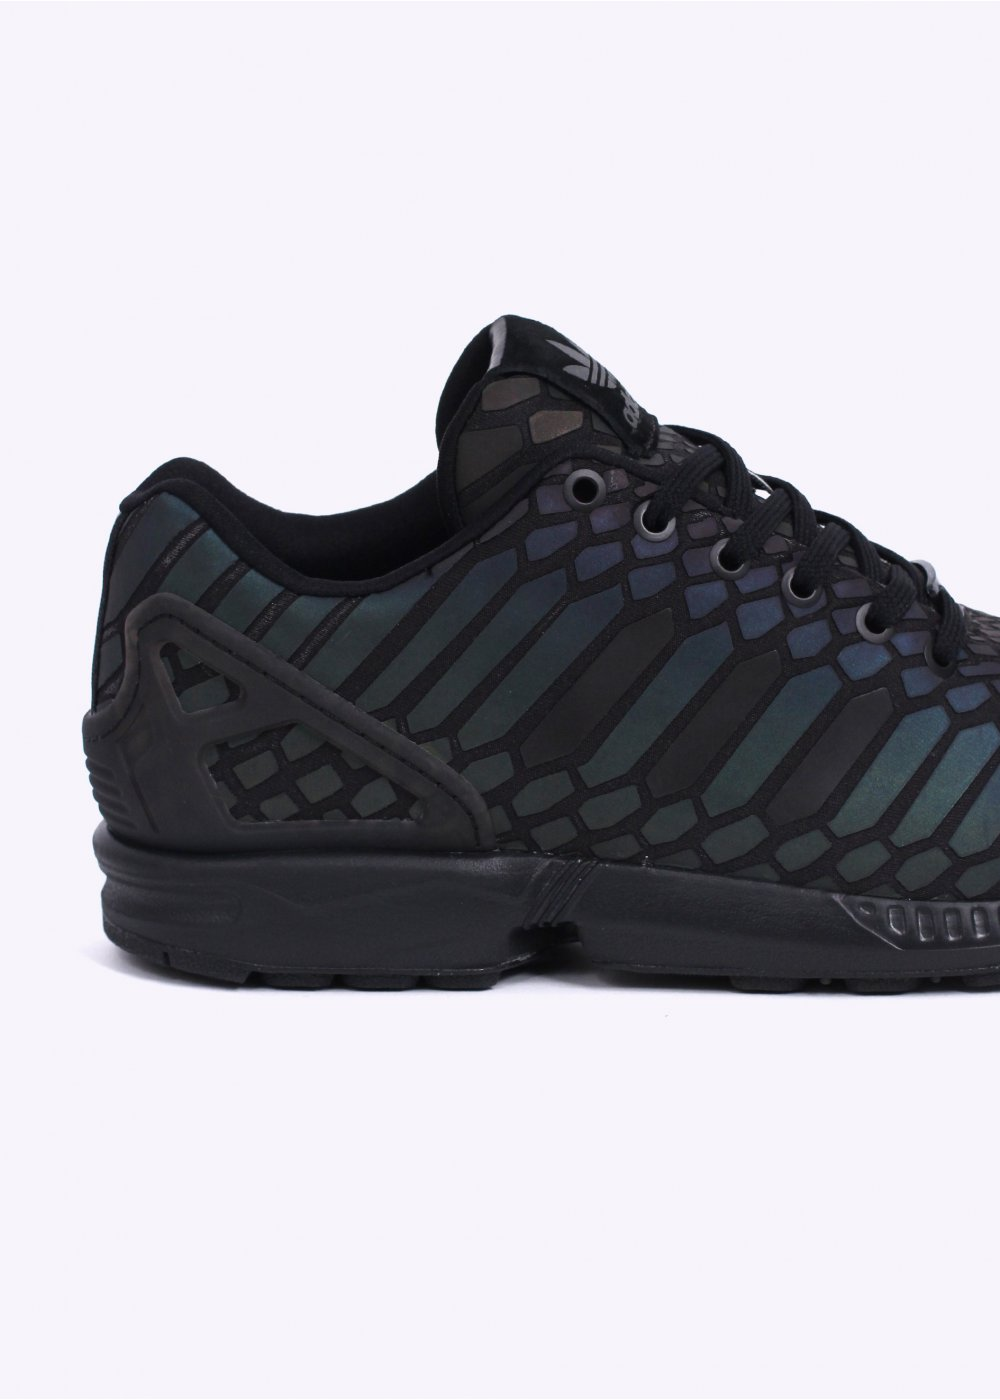 quality design a292b 71f4b adidas Originals Footwear ZX Flux Xeno - Black / Reflective